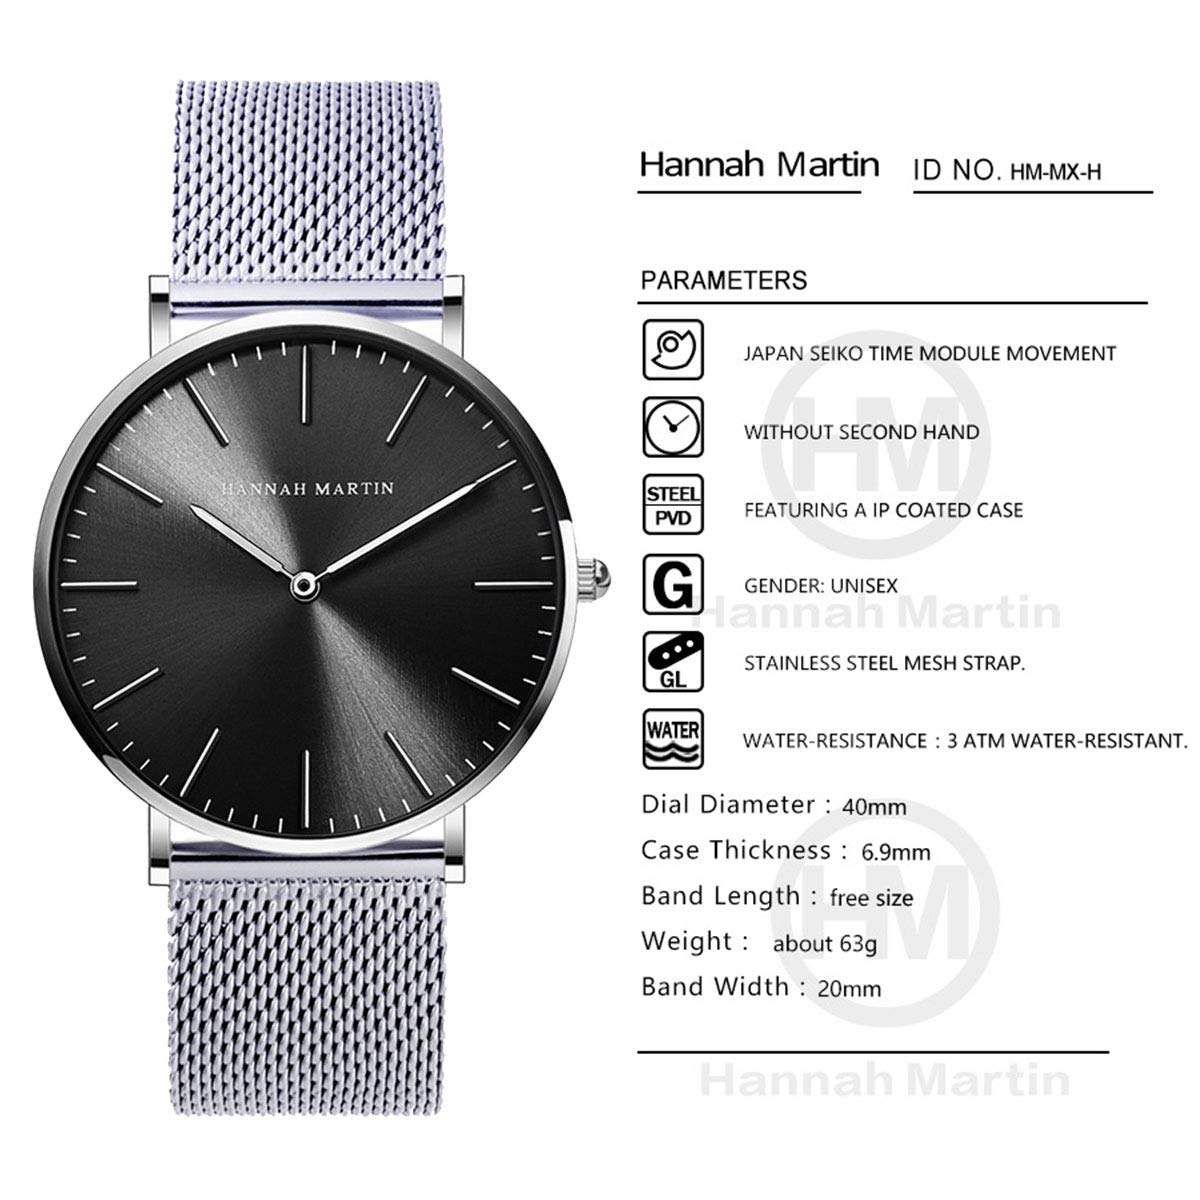 Amazon.com: Hannah Martin Couple Watches Quartz Wrist Watches Stainless Steel Mesh Band 30M Waterproof for Loves Gifts (Silver): Watches